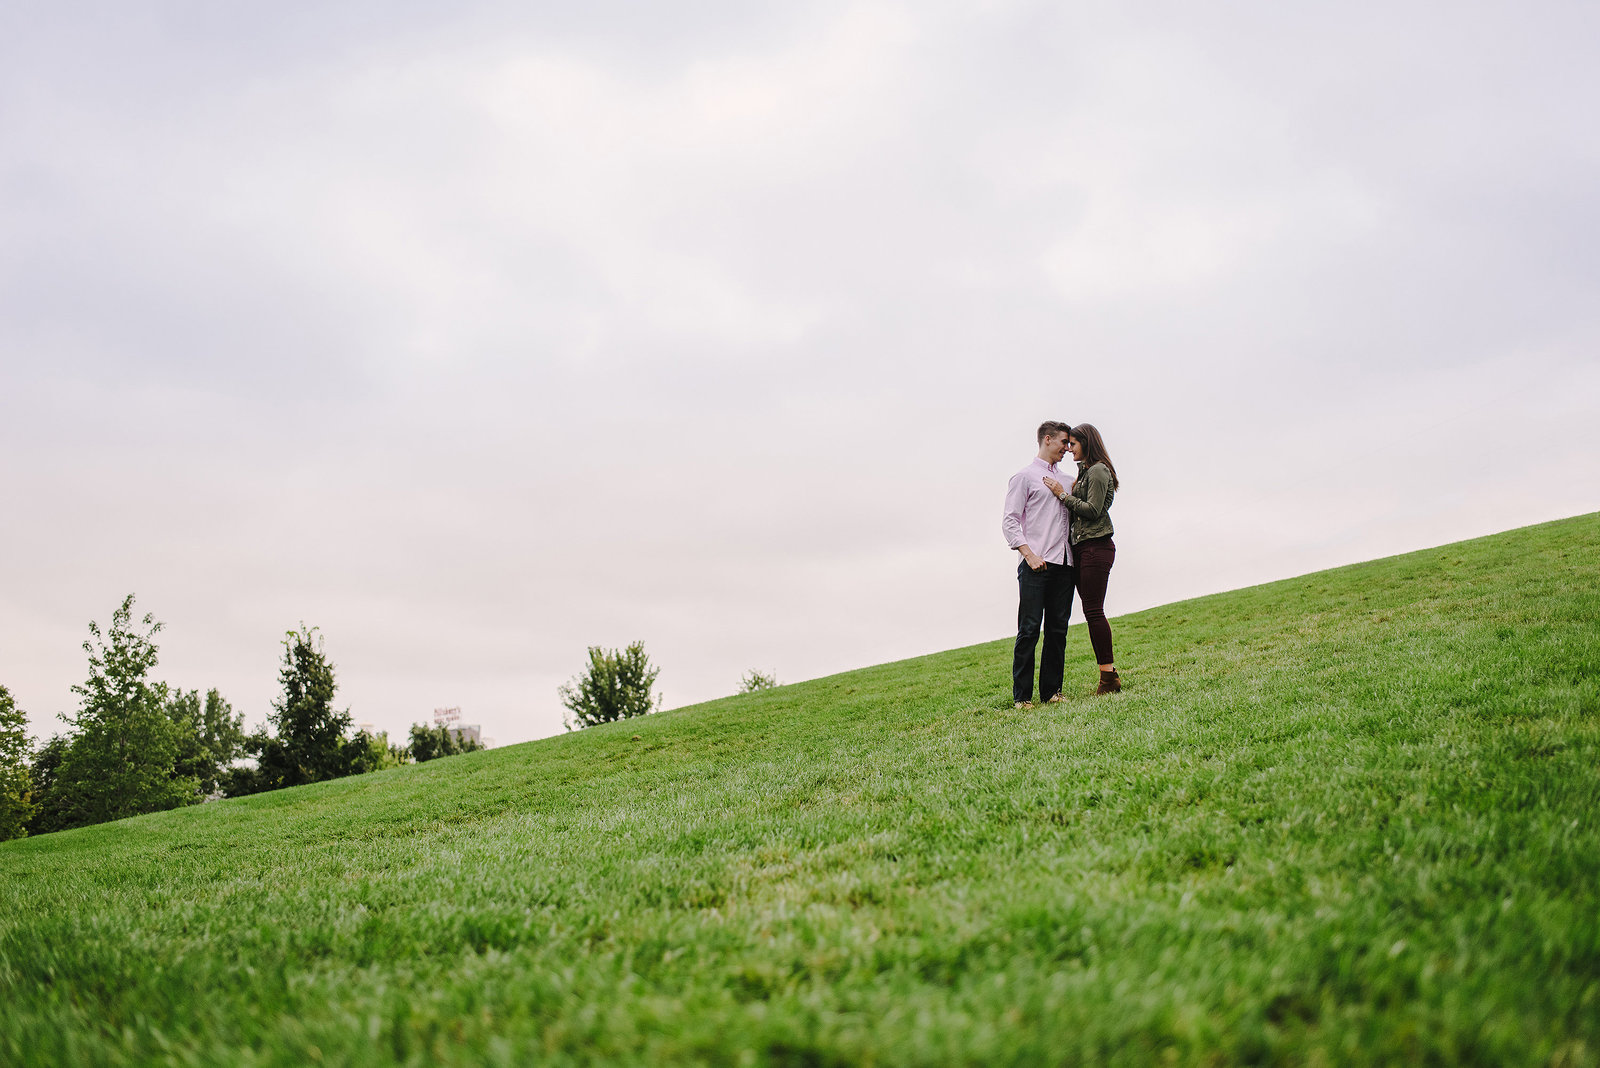 Minneapolis Couples Engagement Session Photographer Laura Alpizar 3000